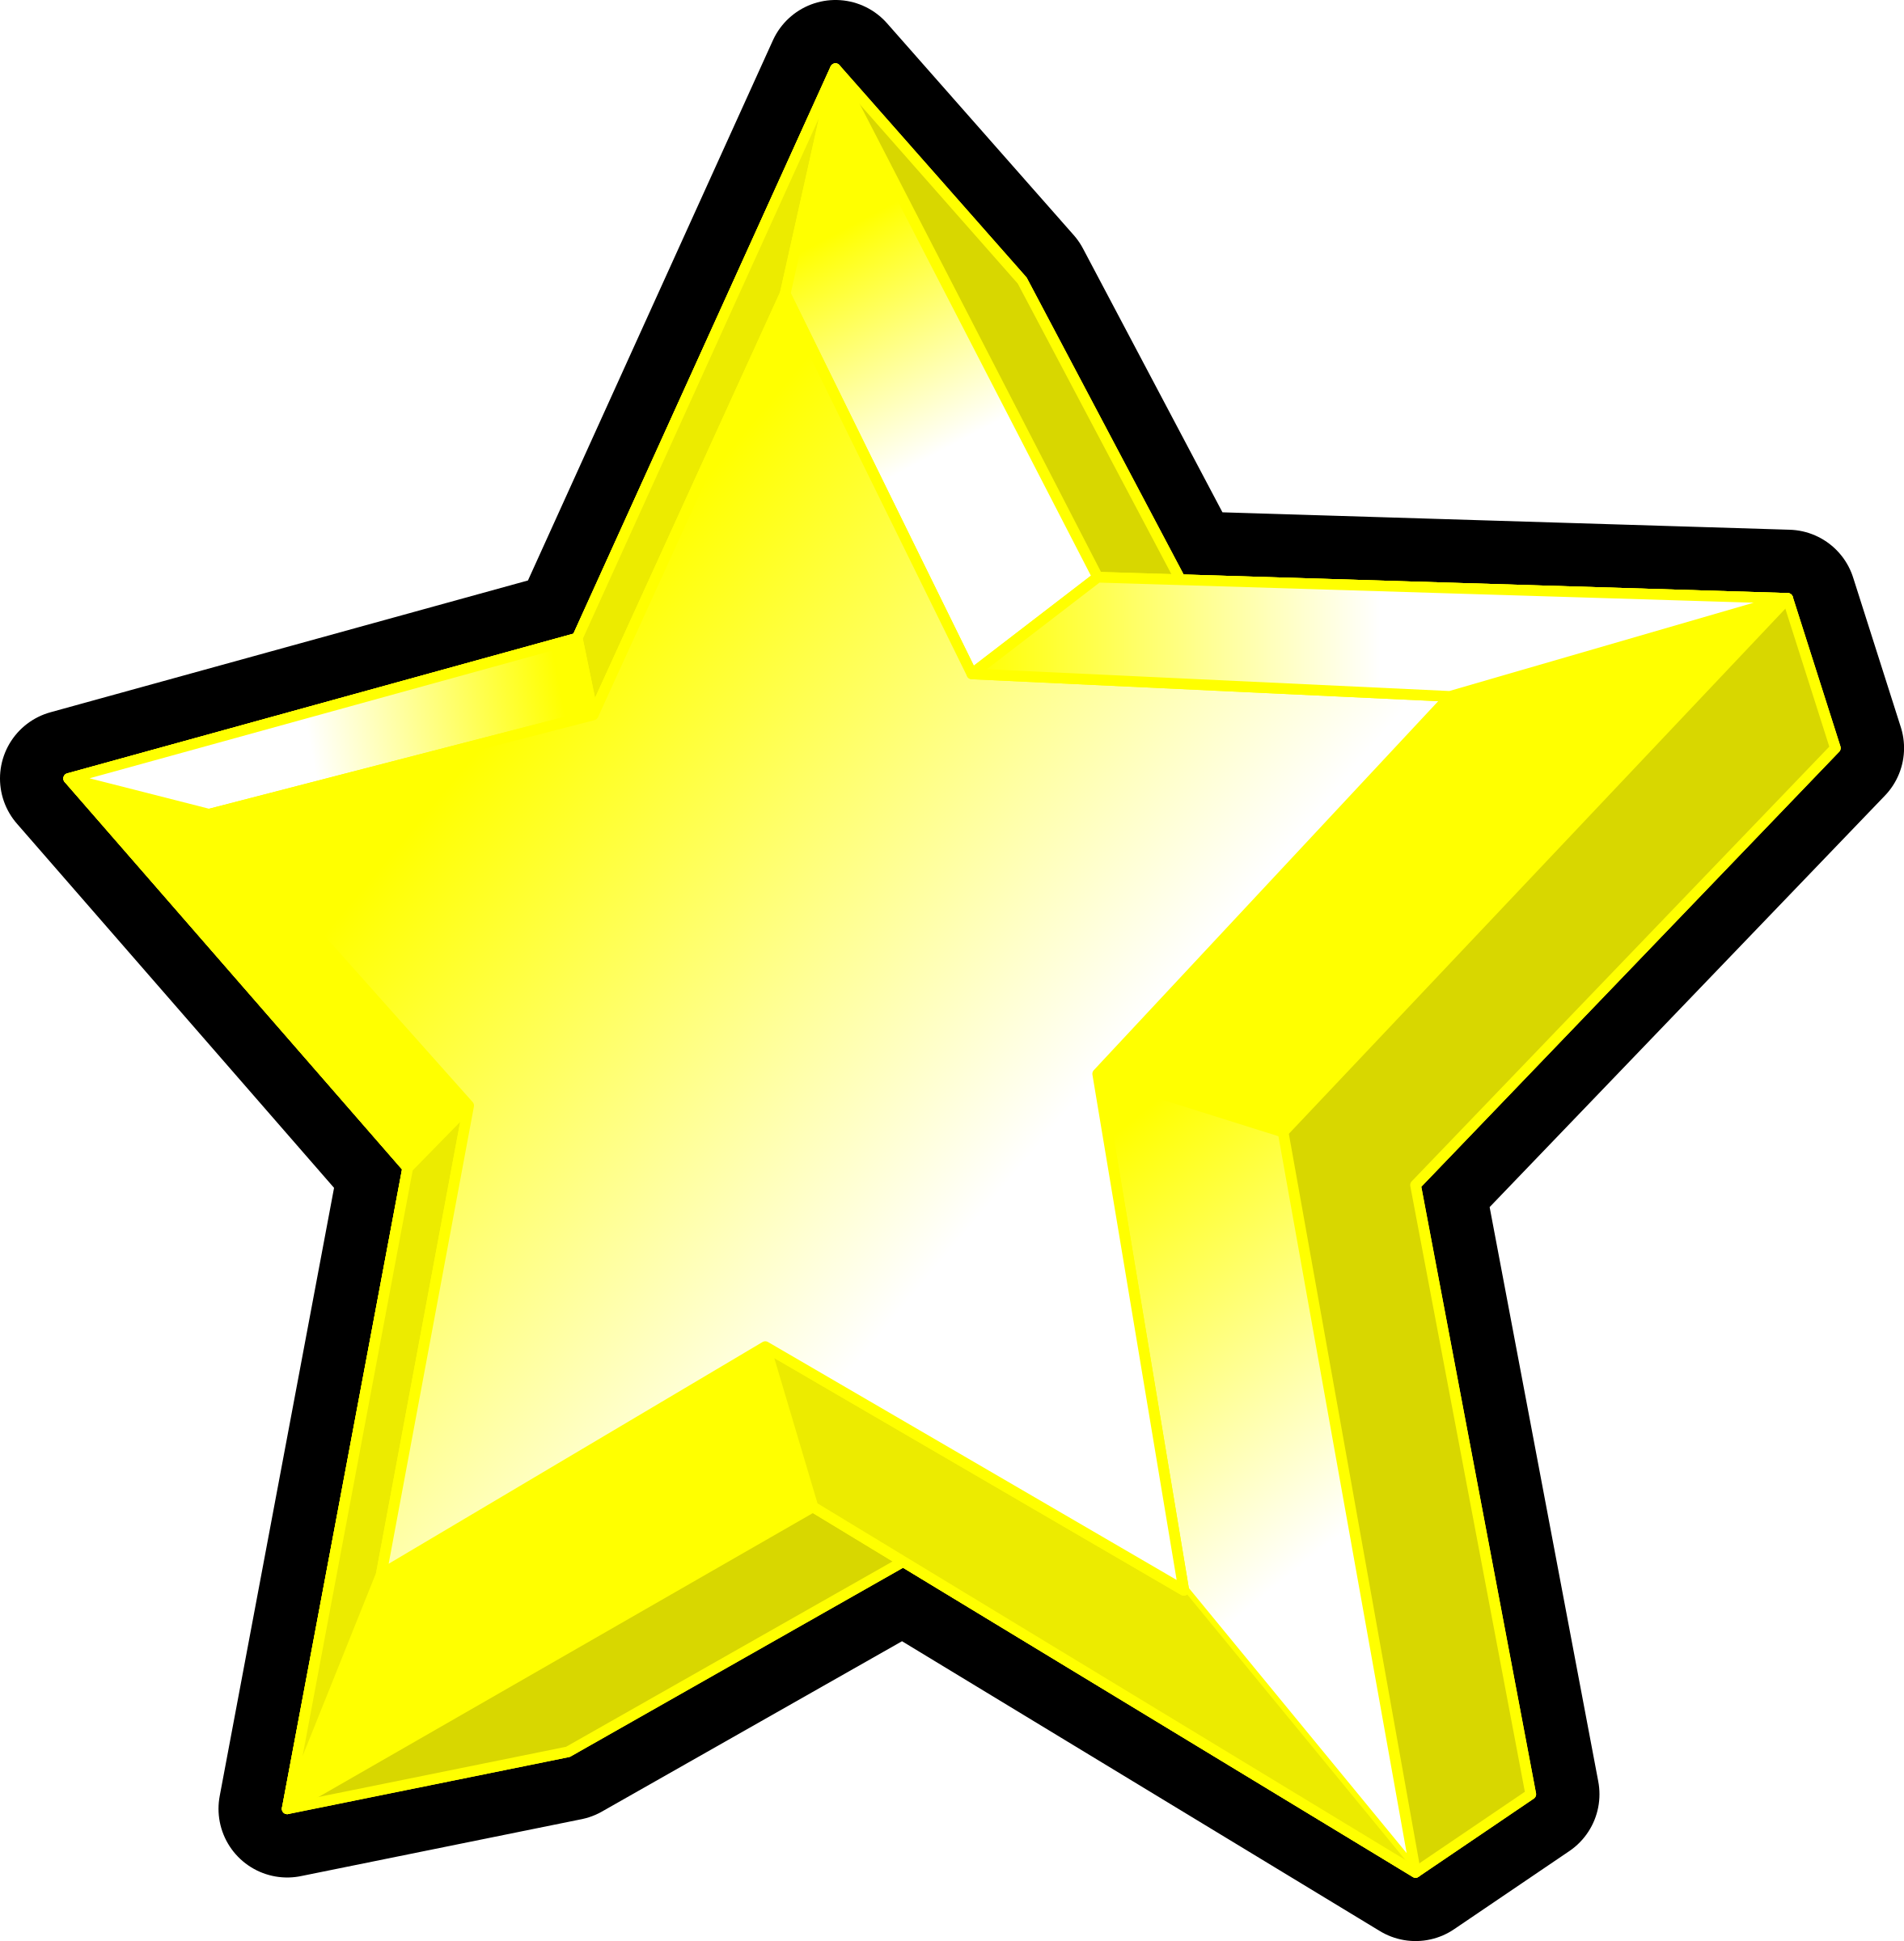 Star symbol by gramzon